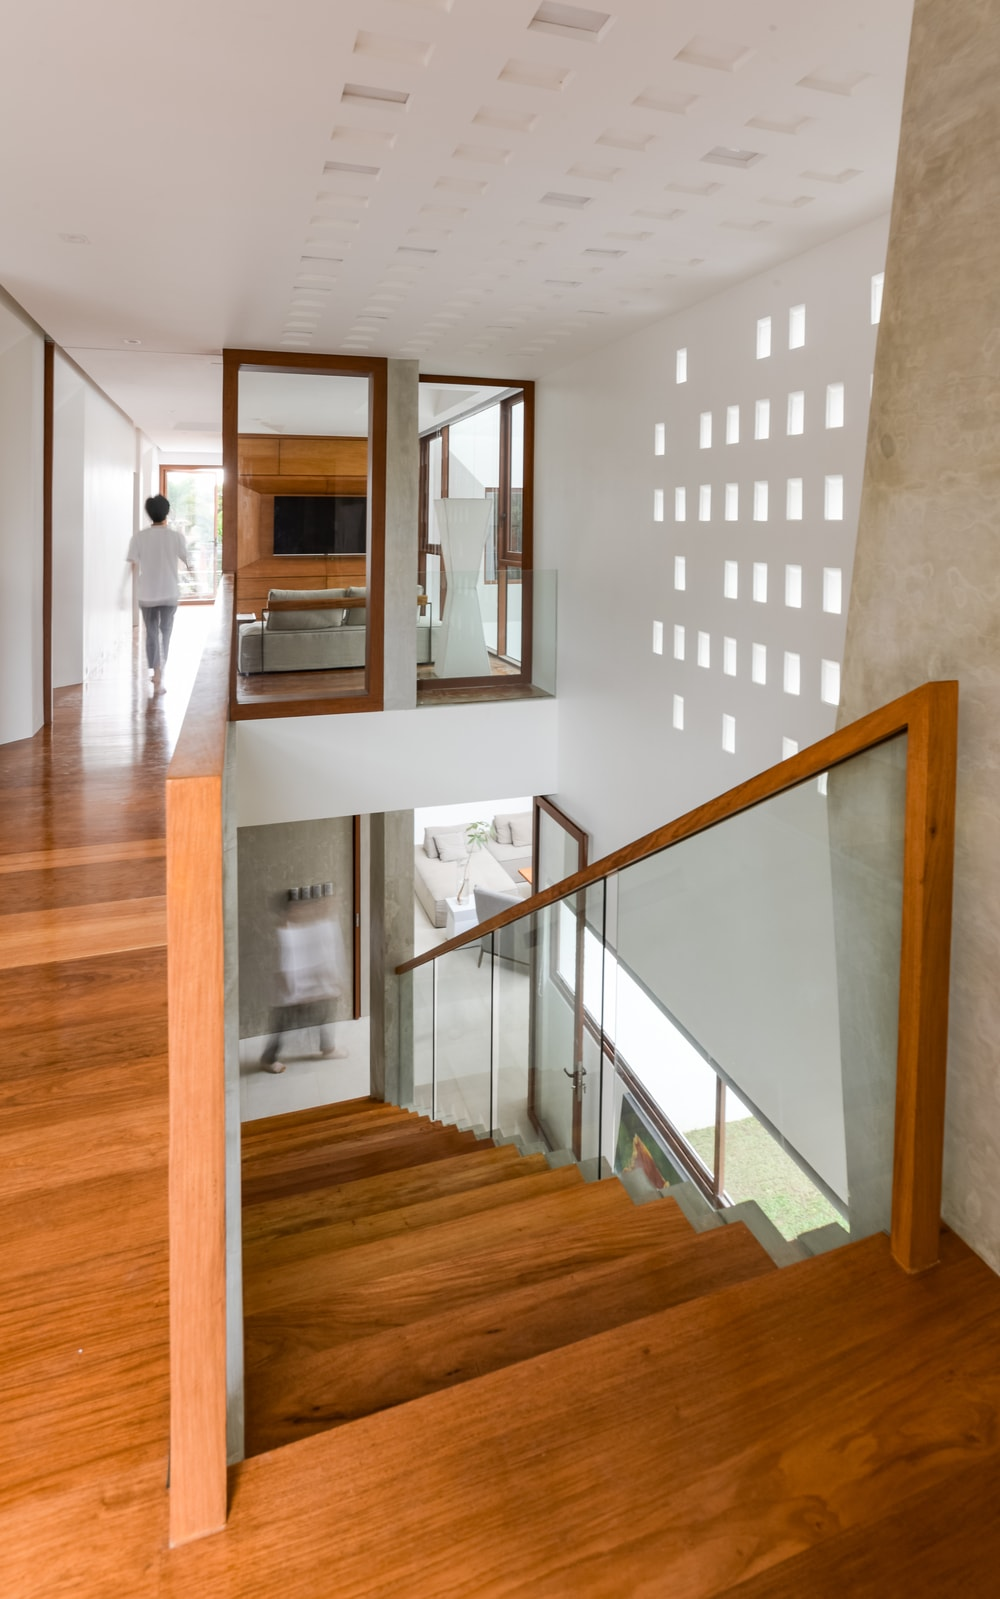 This is the view of the second-level landing showcasing the wooden steps of the stairs that matches with the hardwood flooring and banisters.